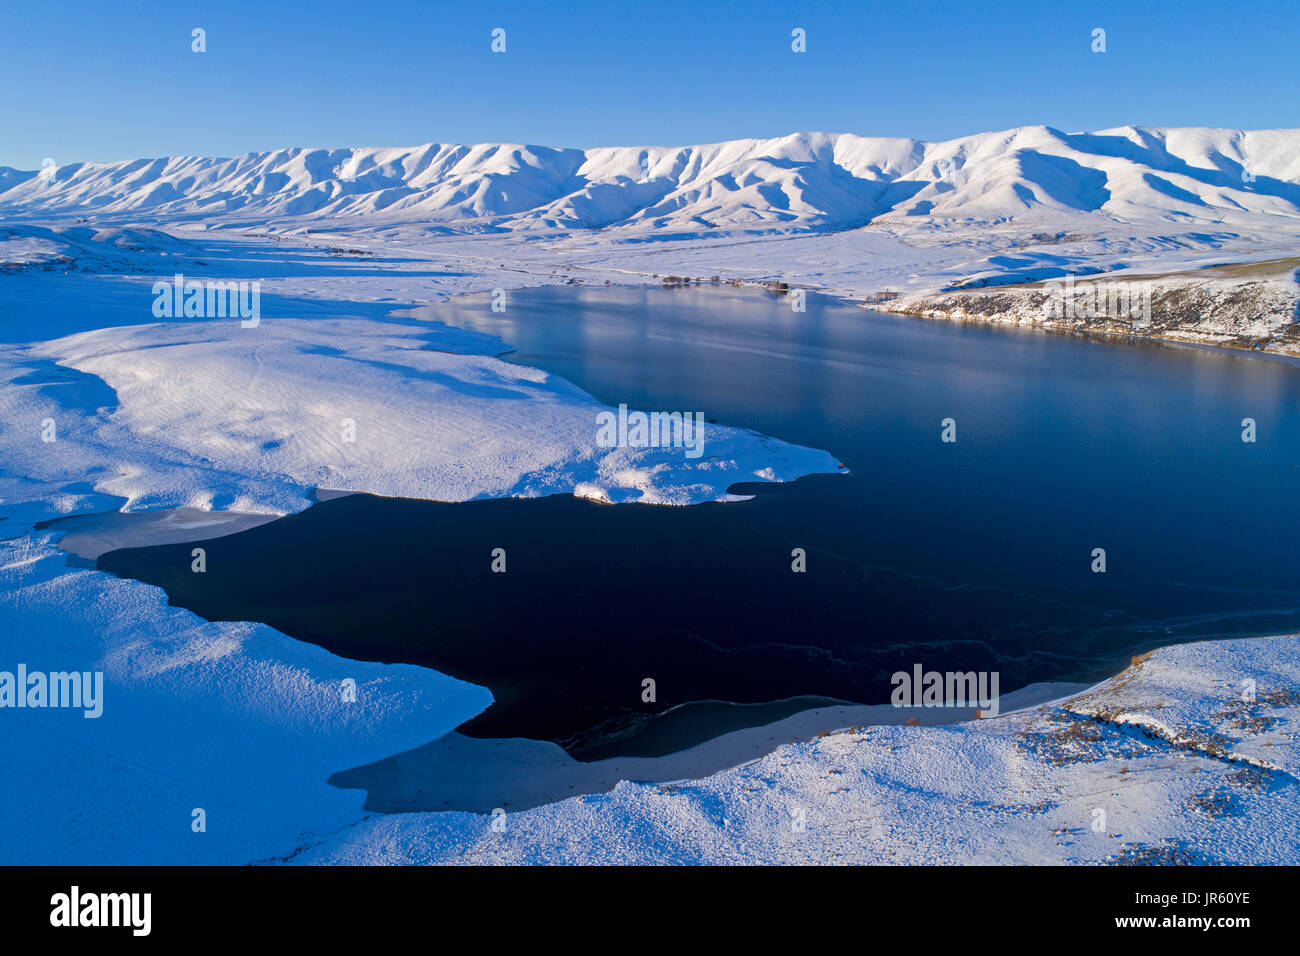 Falls Dam and Hawkdun Range in winter, Maniototo, Central Otago, South Island, New Zealand - drone aerial - Stock Image